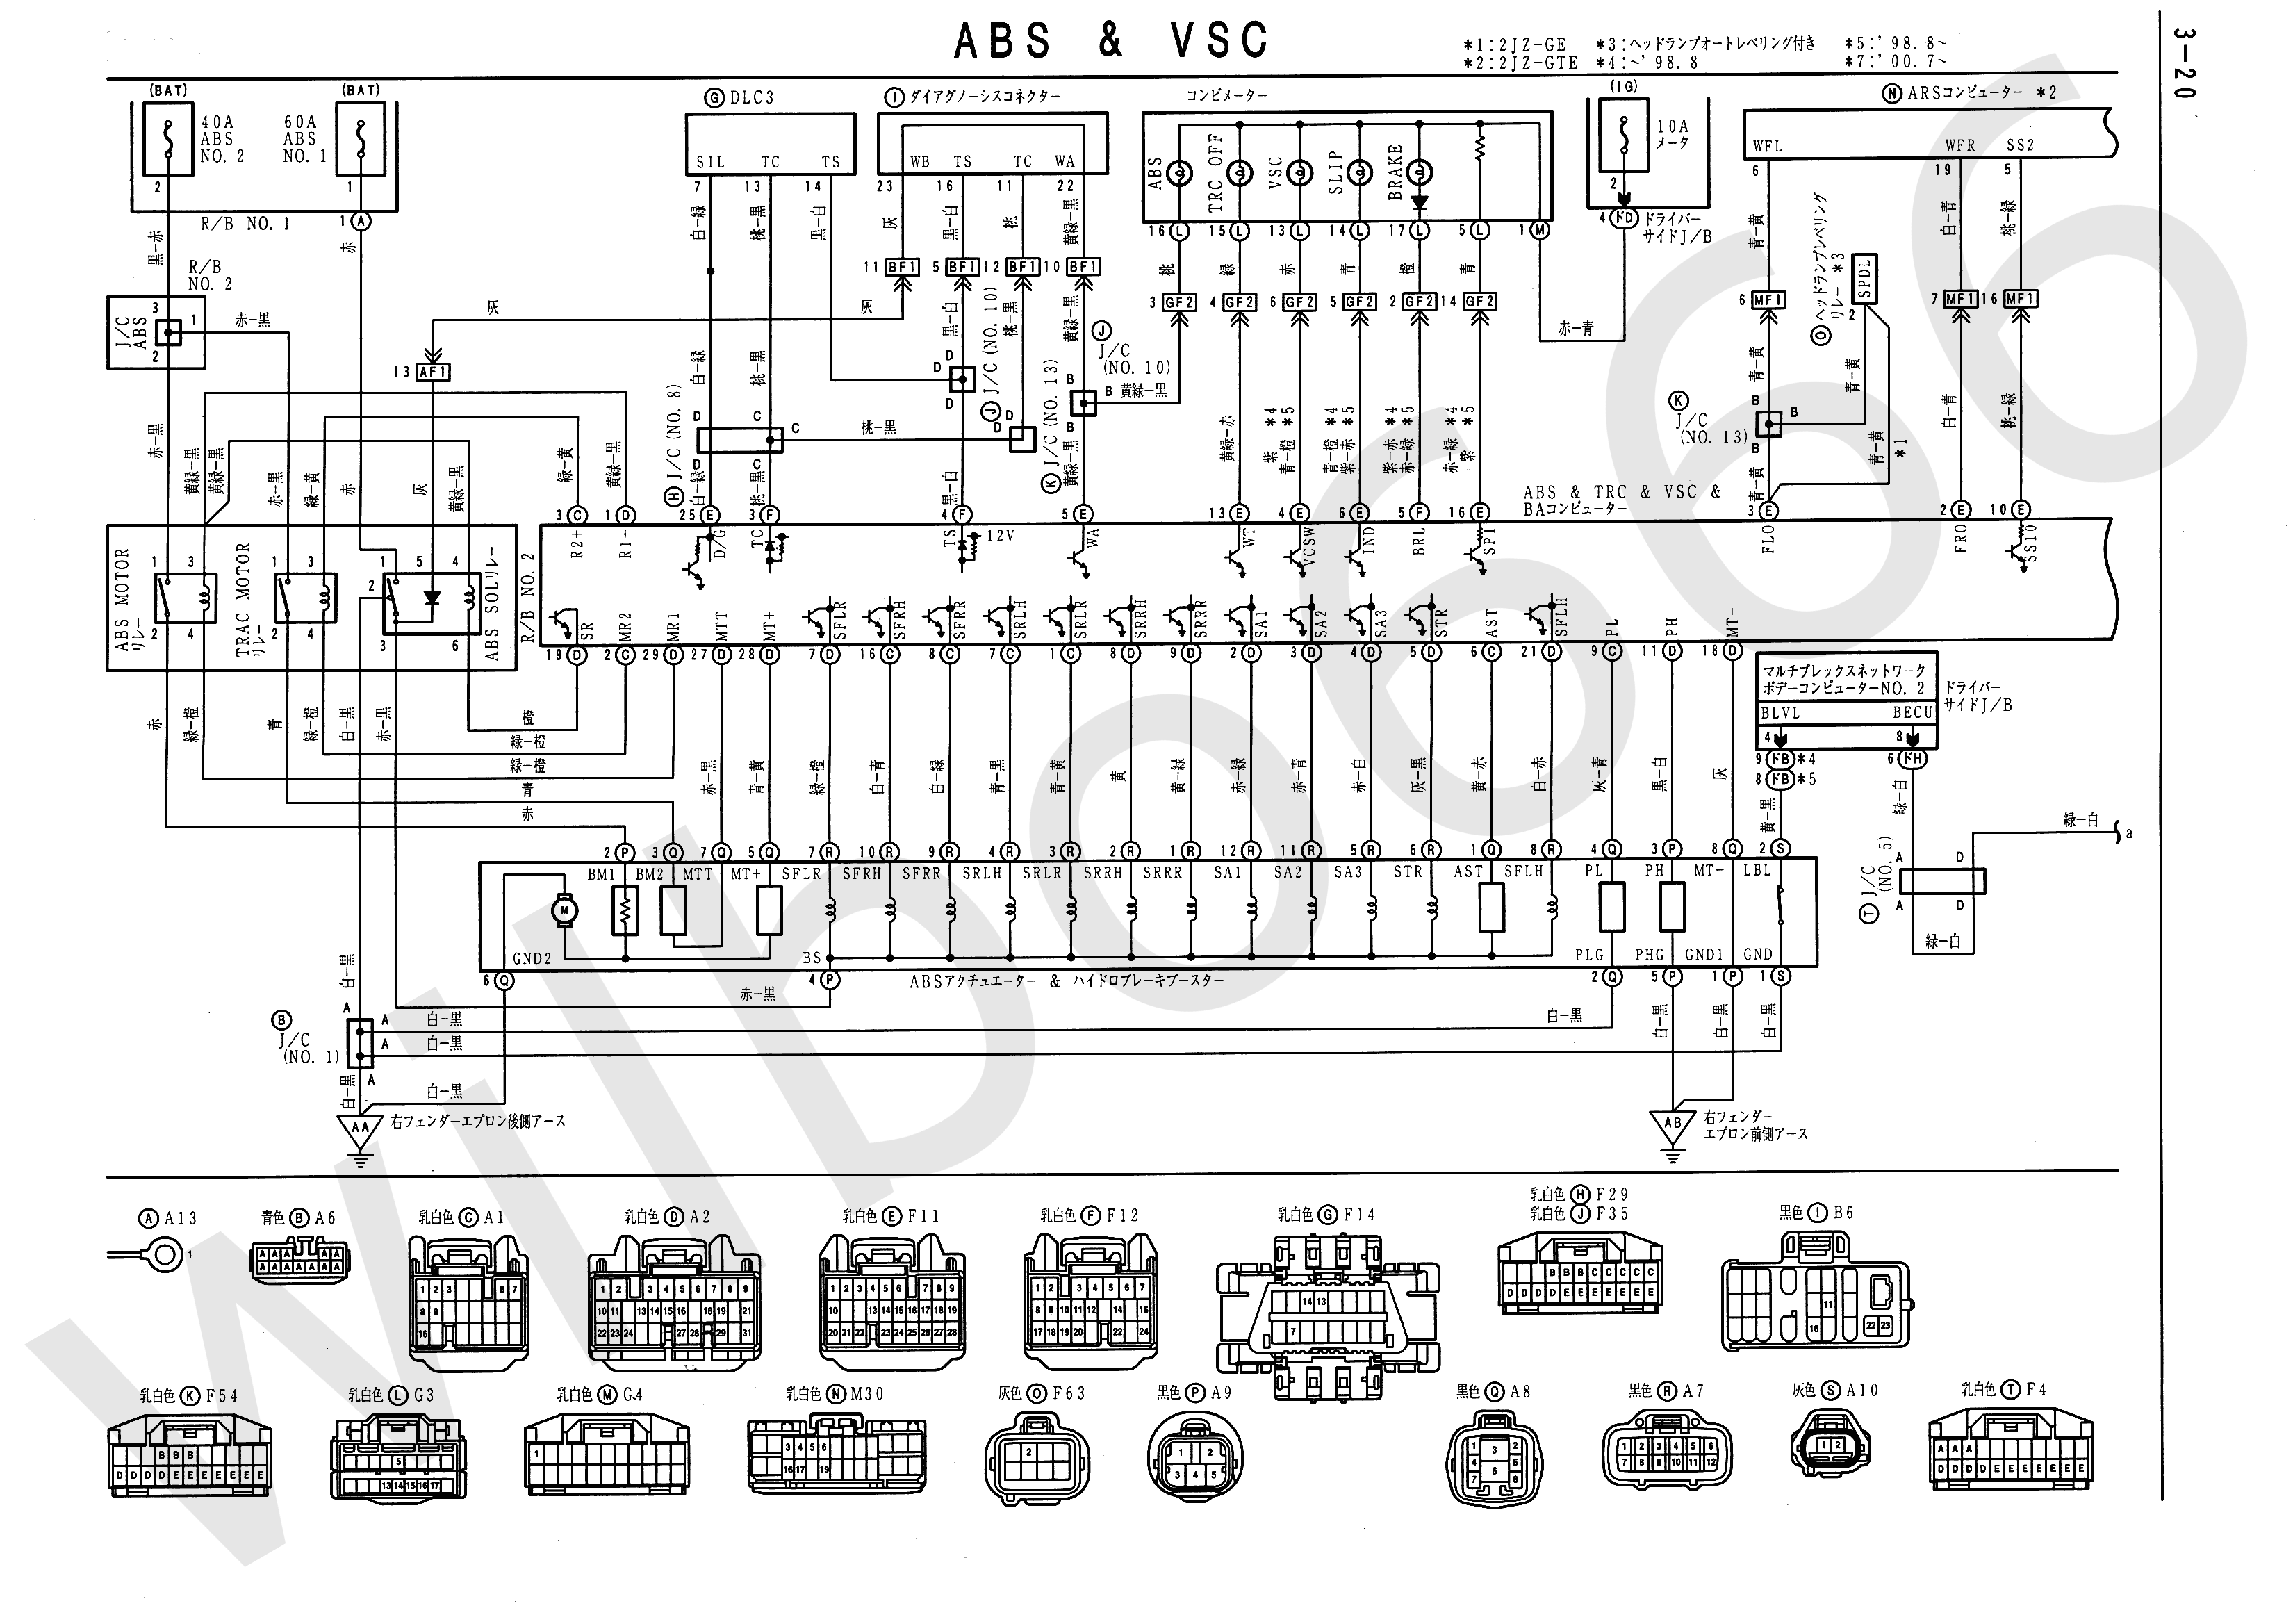 JZS161 Electrical Wiring Diagram 6748505 3 20 wilbo666 2jz gte vvti jzs161 aristo engine wiring 1jz vvti wiring diagram at couponss.co